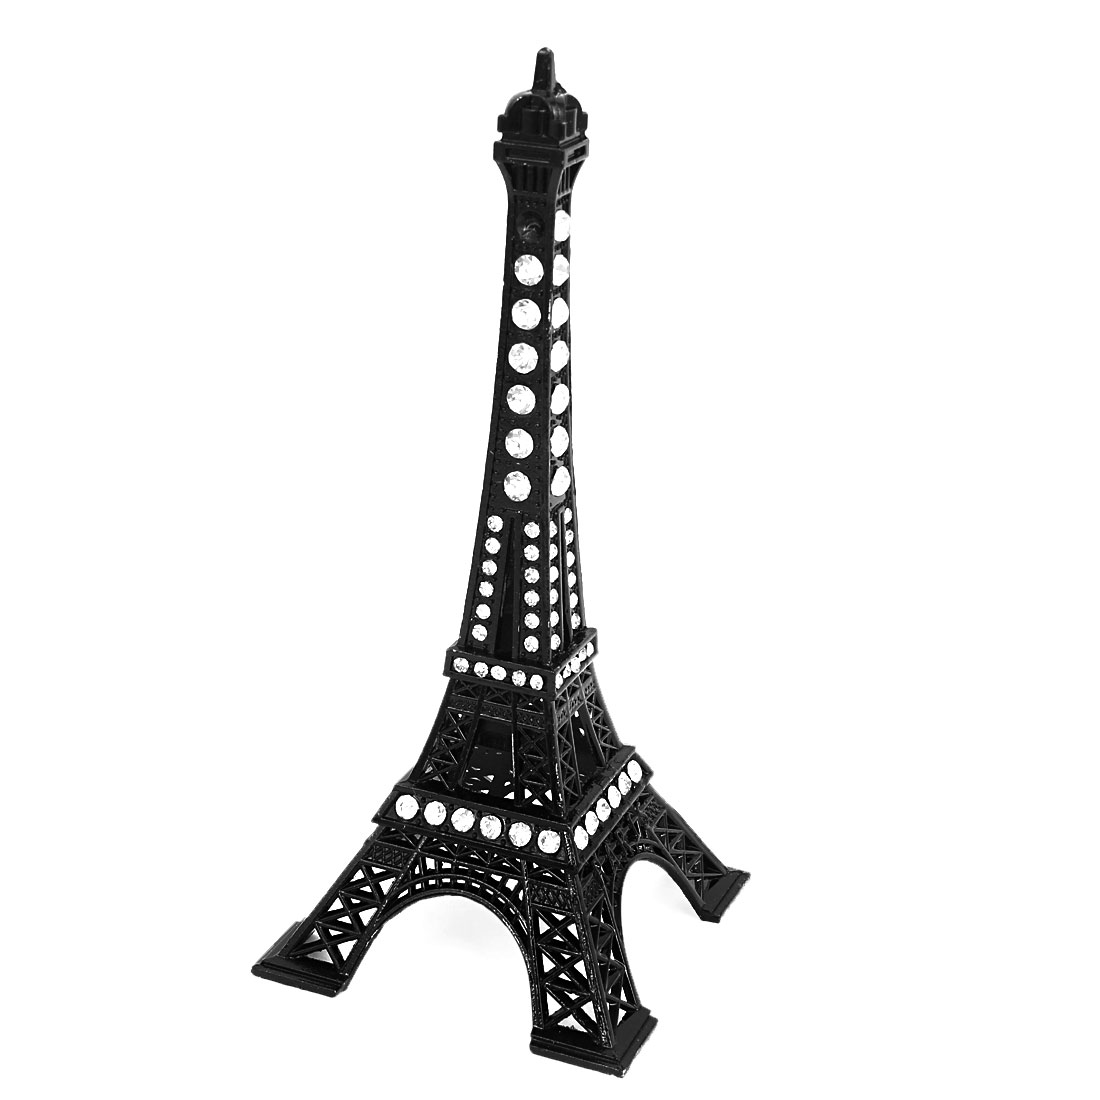 Rhinestone Black Paris Eiffel Tower Figurine Sculpture Model Office Decor 13cm